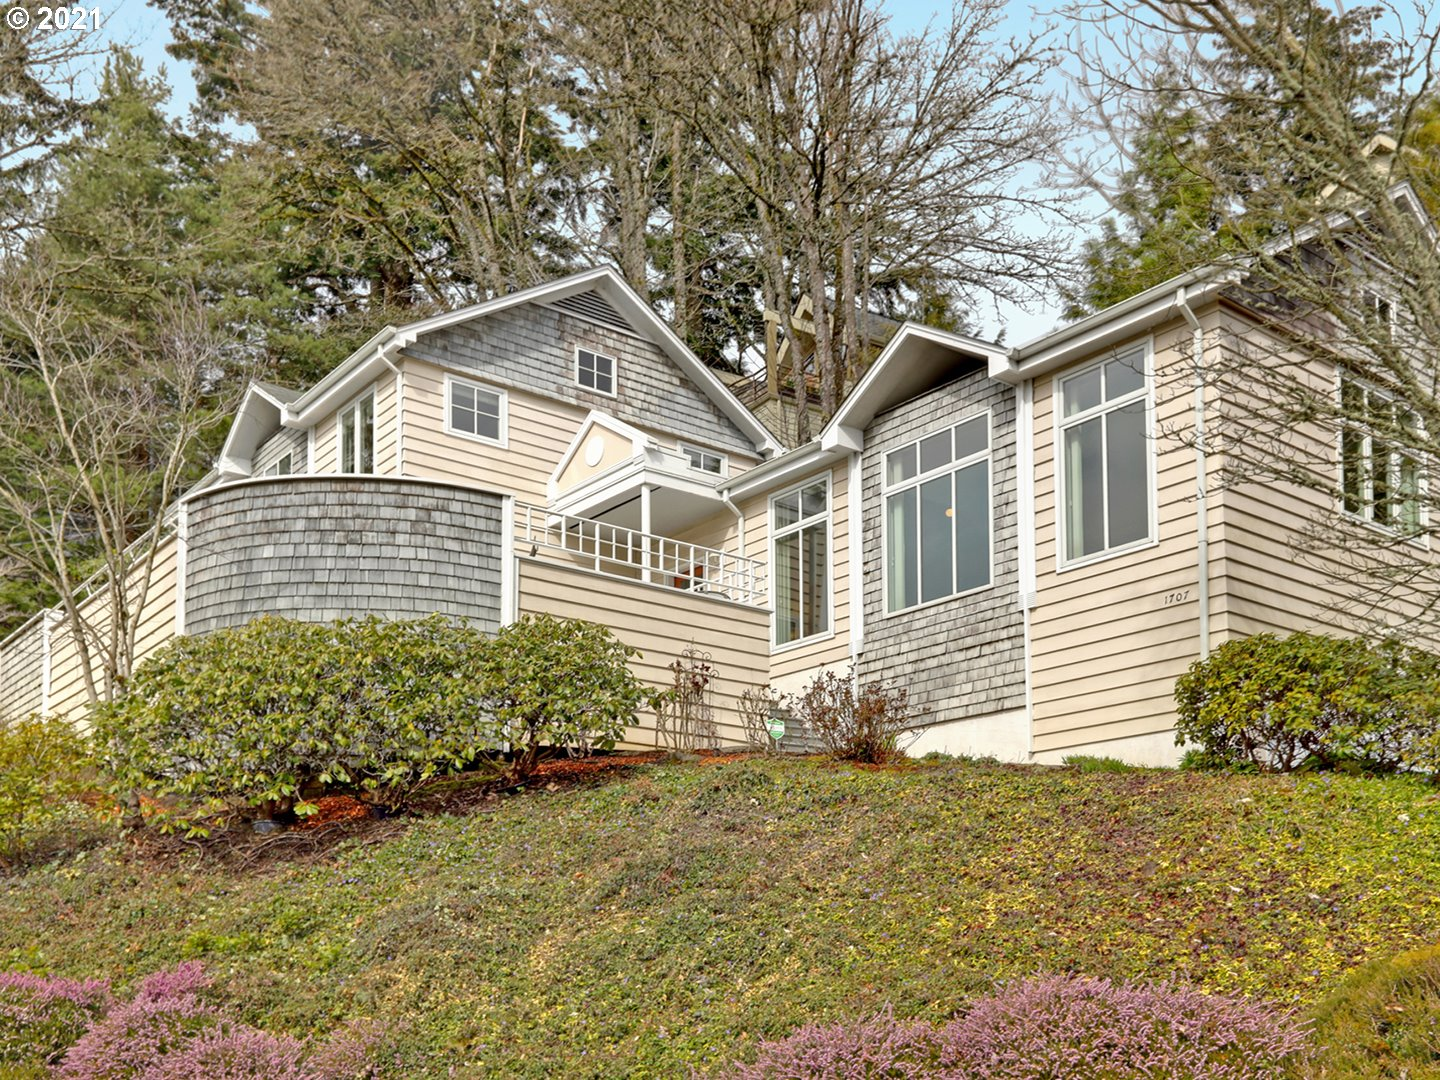 One owner custom home with views of Marquam Trails, cul-de-sac location & full southern exposure. Expansive sunny deck. This 3 bdrm, 2 bth home w/high ceilings is light & airy. Great room w/fireplace, wall of windows, den/office w/built-ins, kitchen w/eating area. Main level bdrm & bath. Upper level has primary suite, bdrm #3. Tile, bamboo floors, clean lines, pristine condition. Dbl garage, lots of storage, driveway parking, super quiet setting.